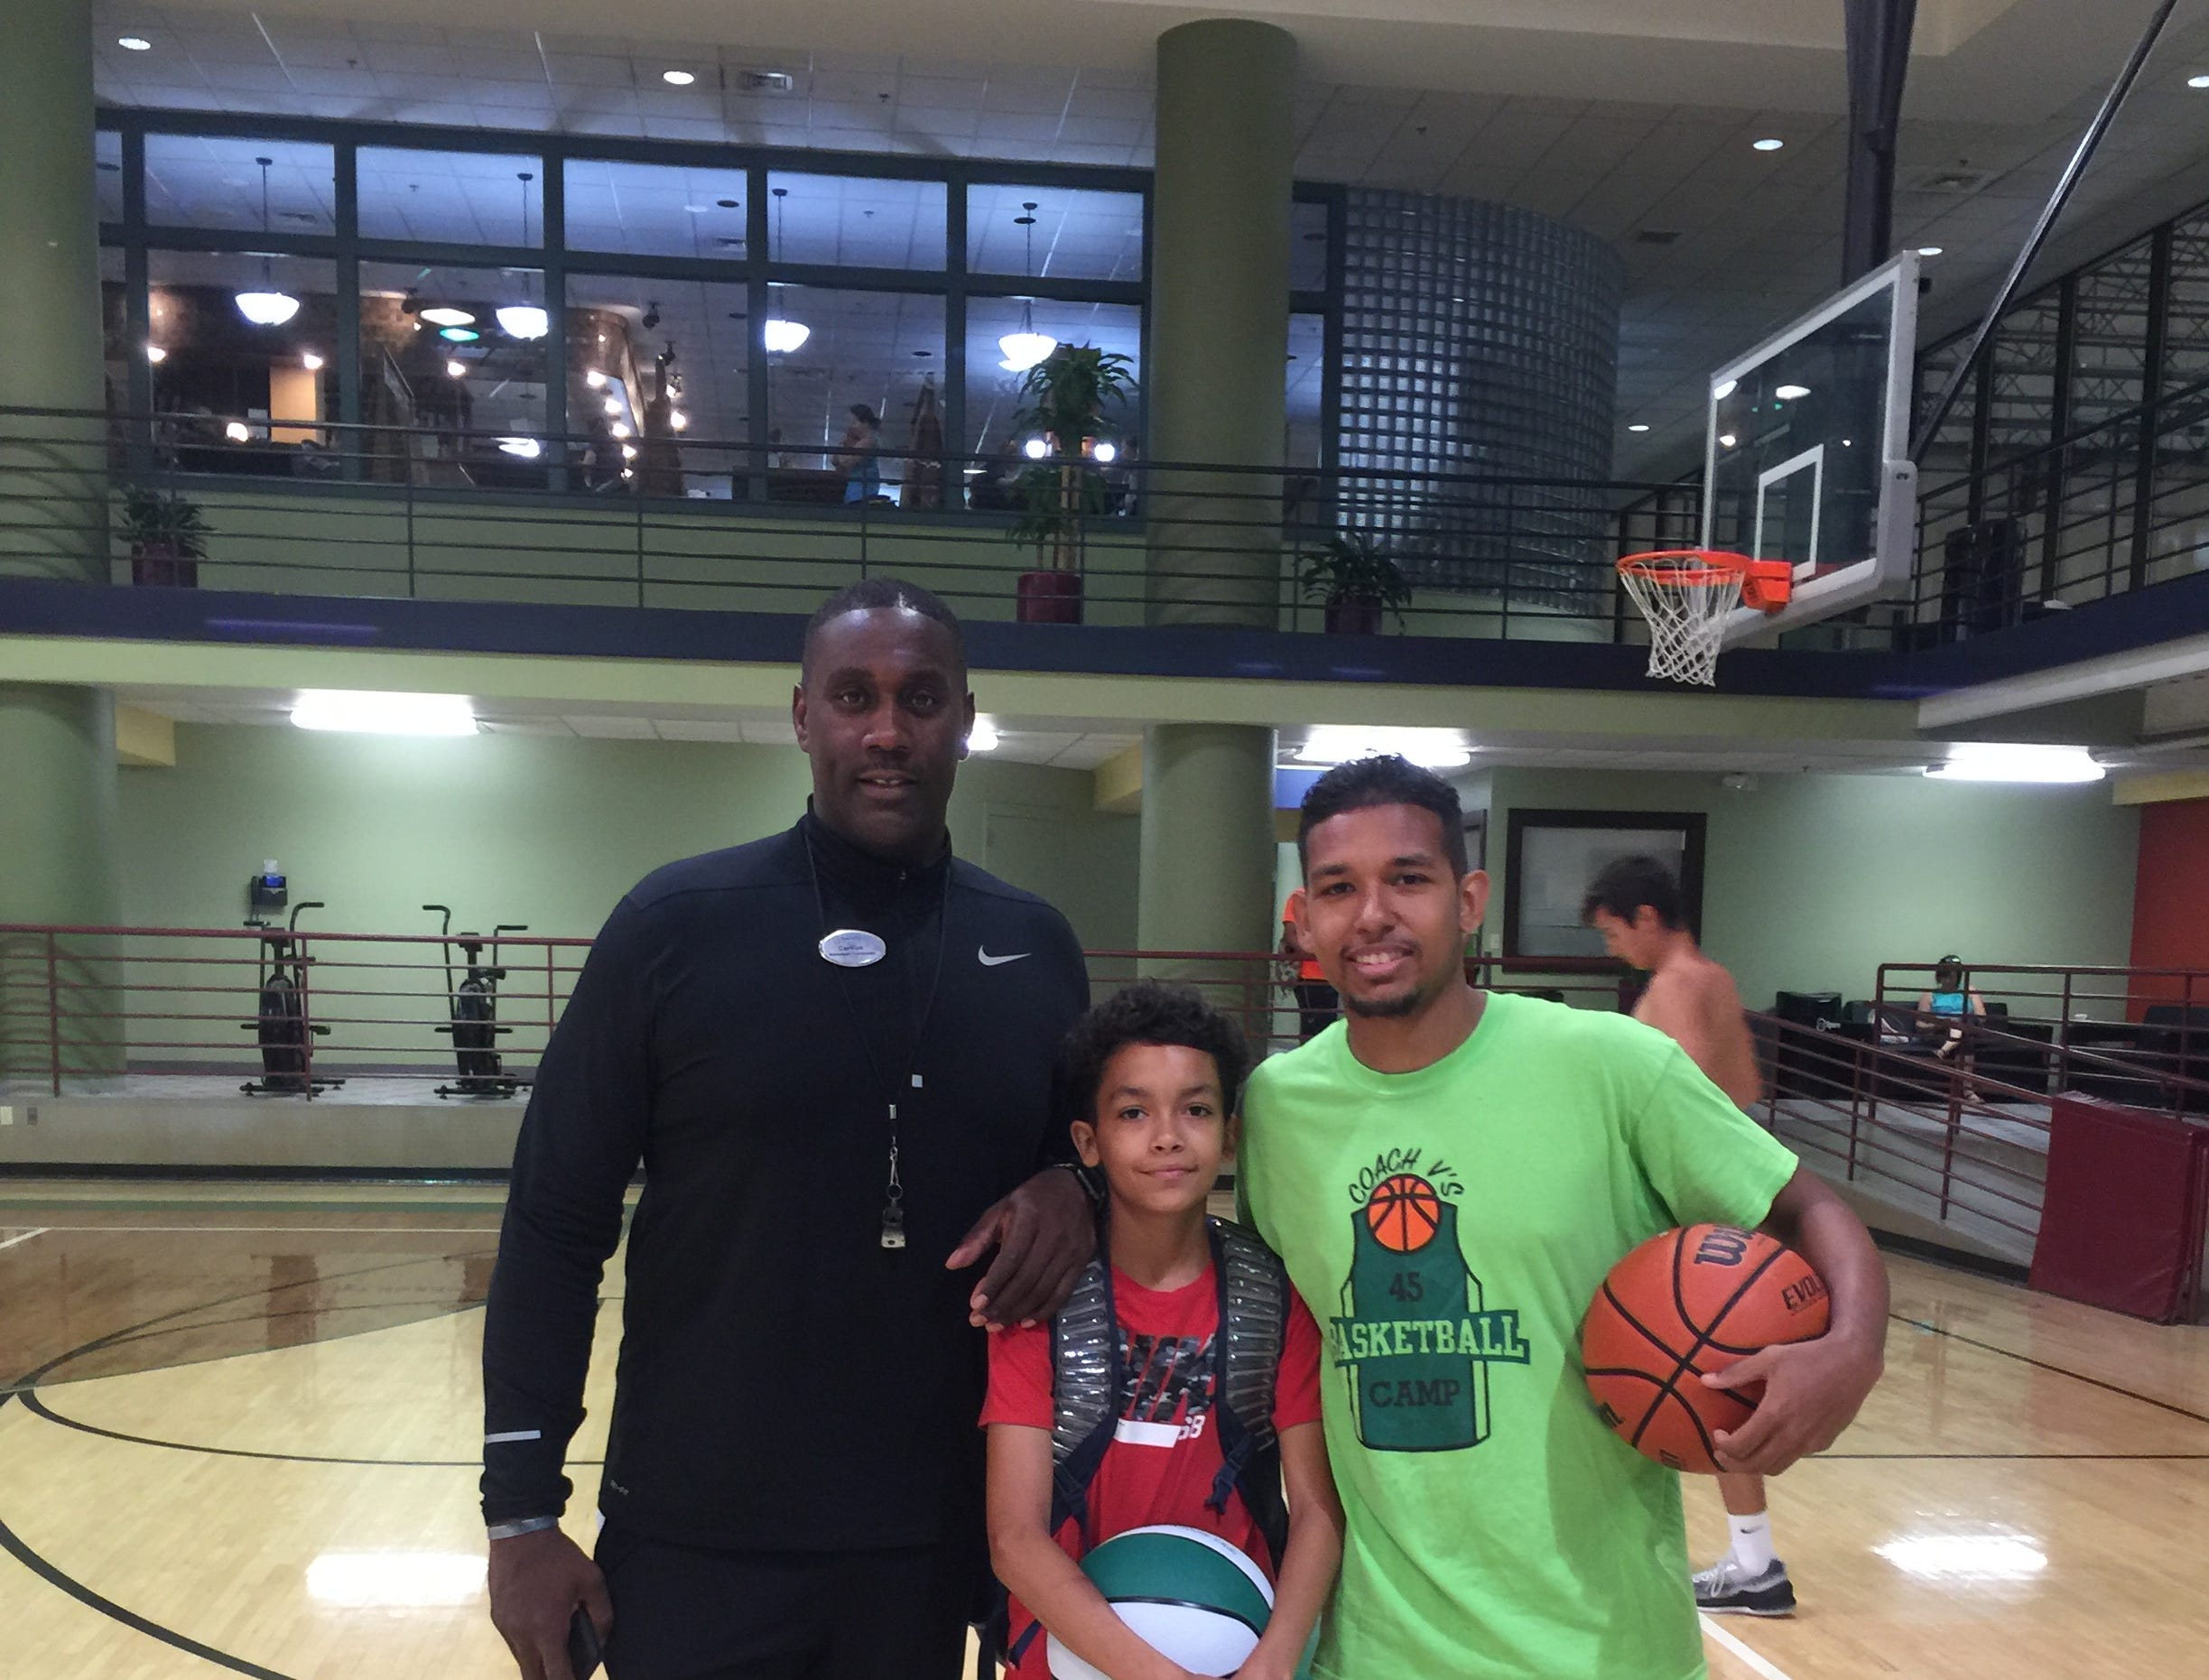 Robert Ray Jr., right, poses for a photo with basketball camp attendee Cameron Lower and his former high school basketball coach, Carlton Valentine.